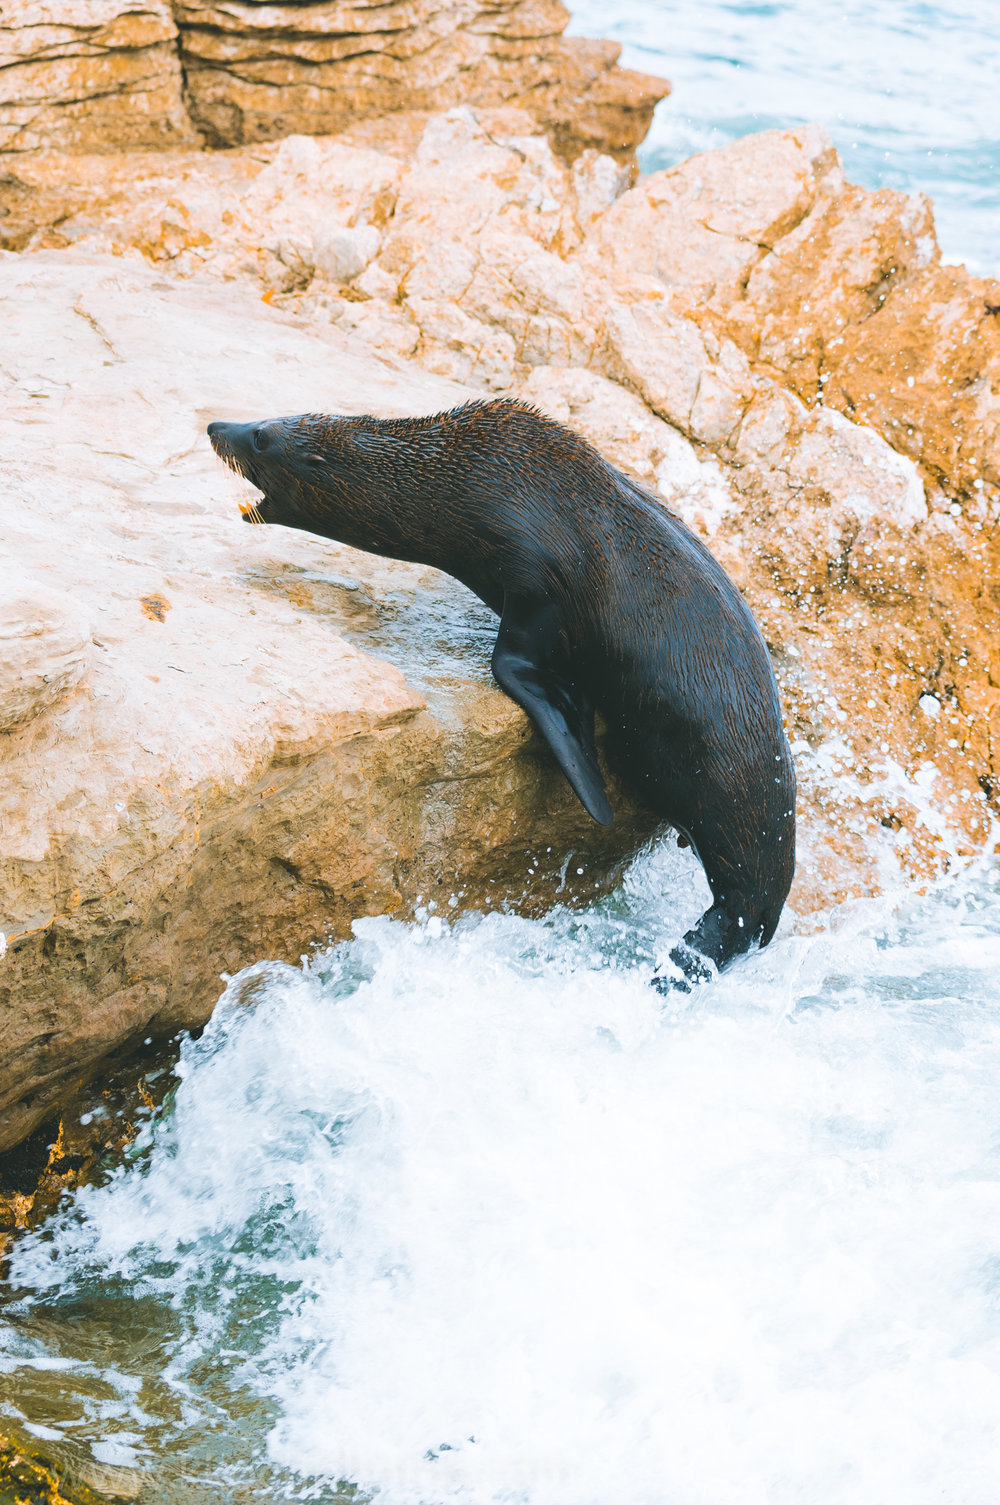 after losing battle, this fur seal falls into the water